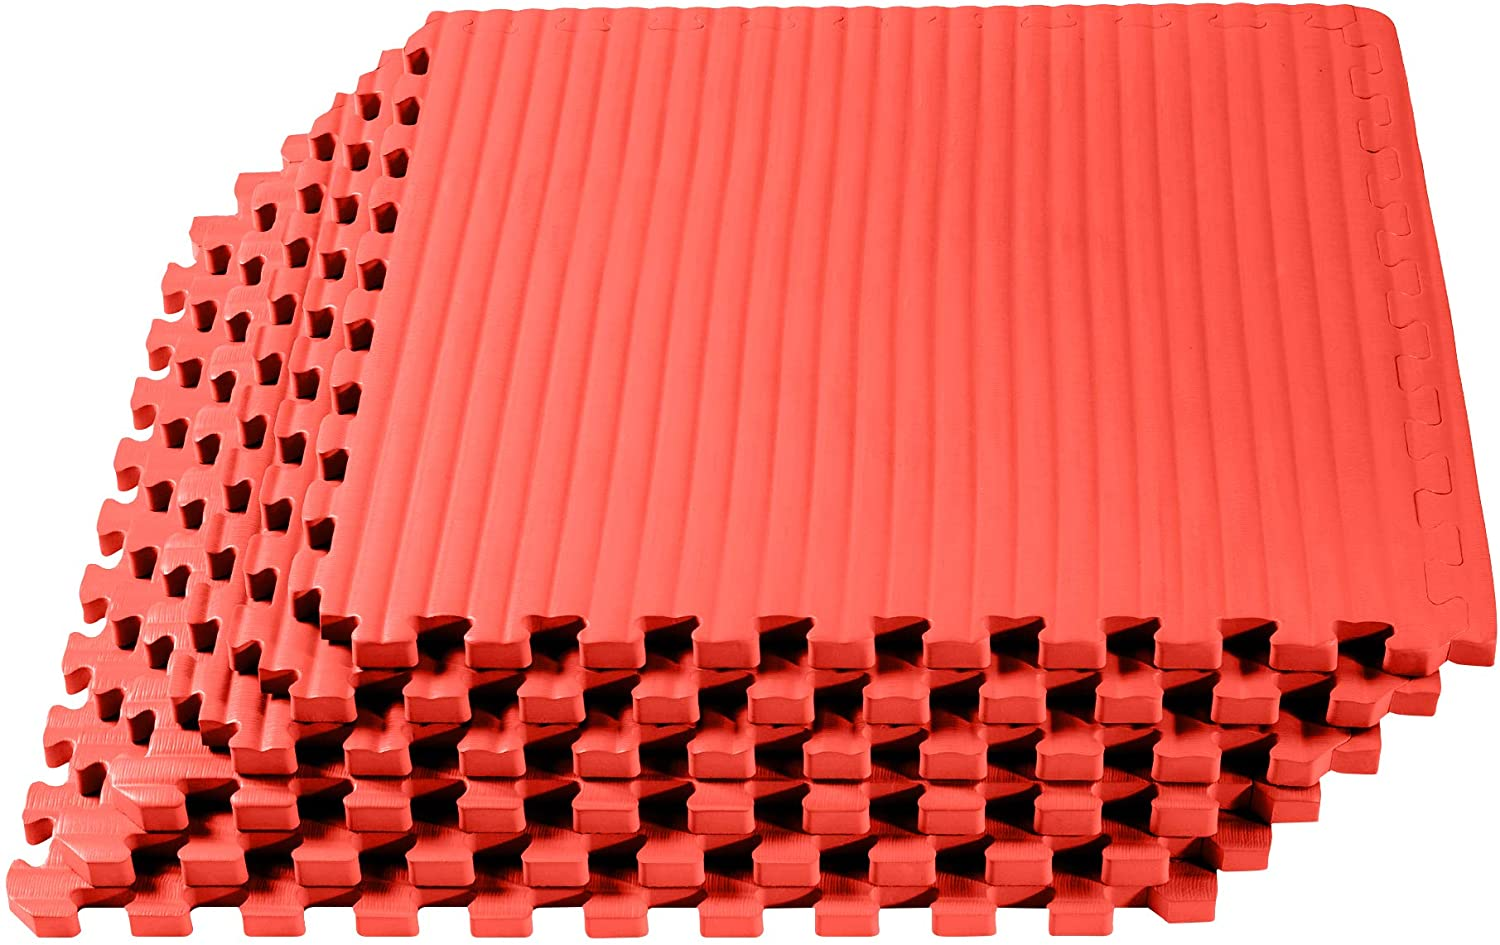 We Sell Mats 3/4 Inch Thick Martial Arts EVA Foam Exercise Mat, Tatami Pattern, Interlocking Floor Tiles for Home Gym, MMA, Anti-Fatigue Mats, 24 in x 24 in